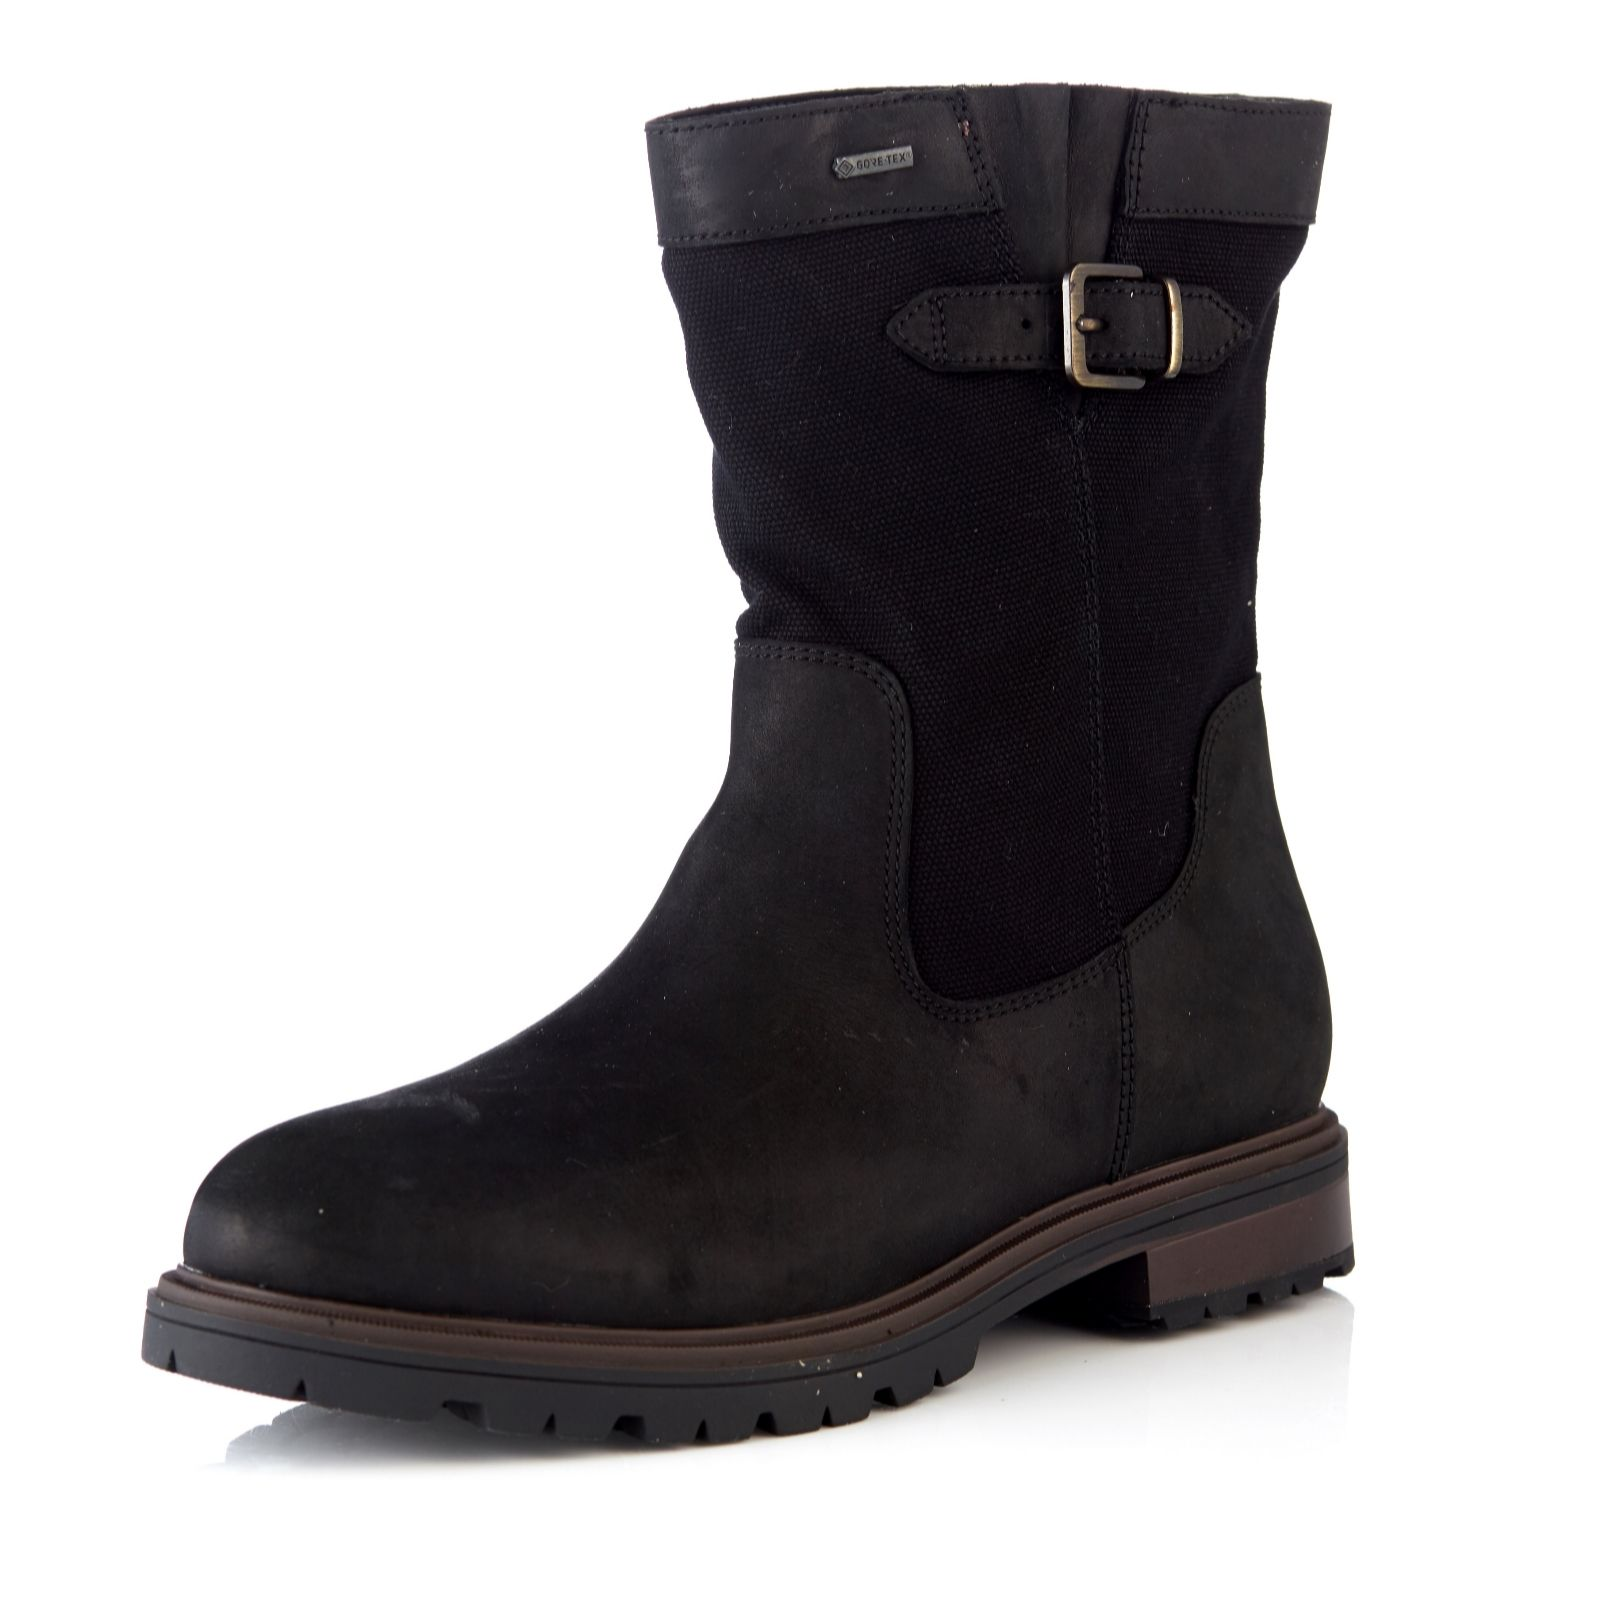 2fec78dd808 Clarks Doxbury Flow GTX Mixed Material Calf Boot Standard Fit - QVC UK